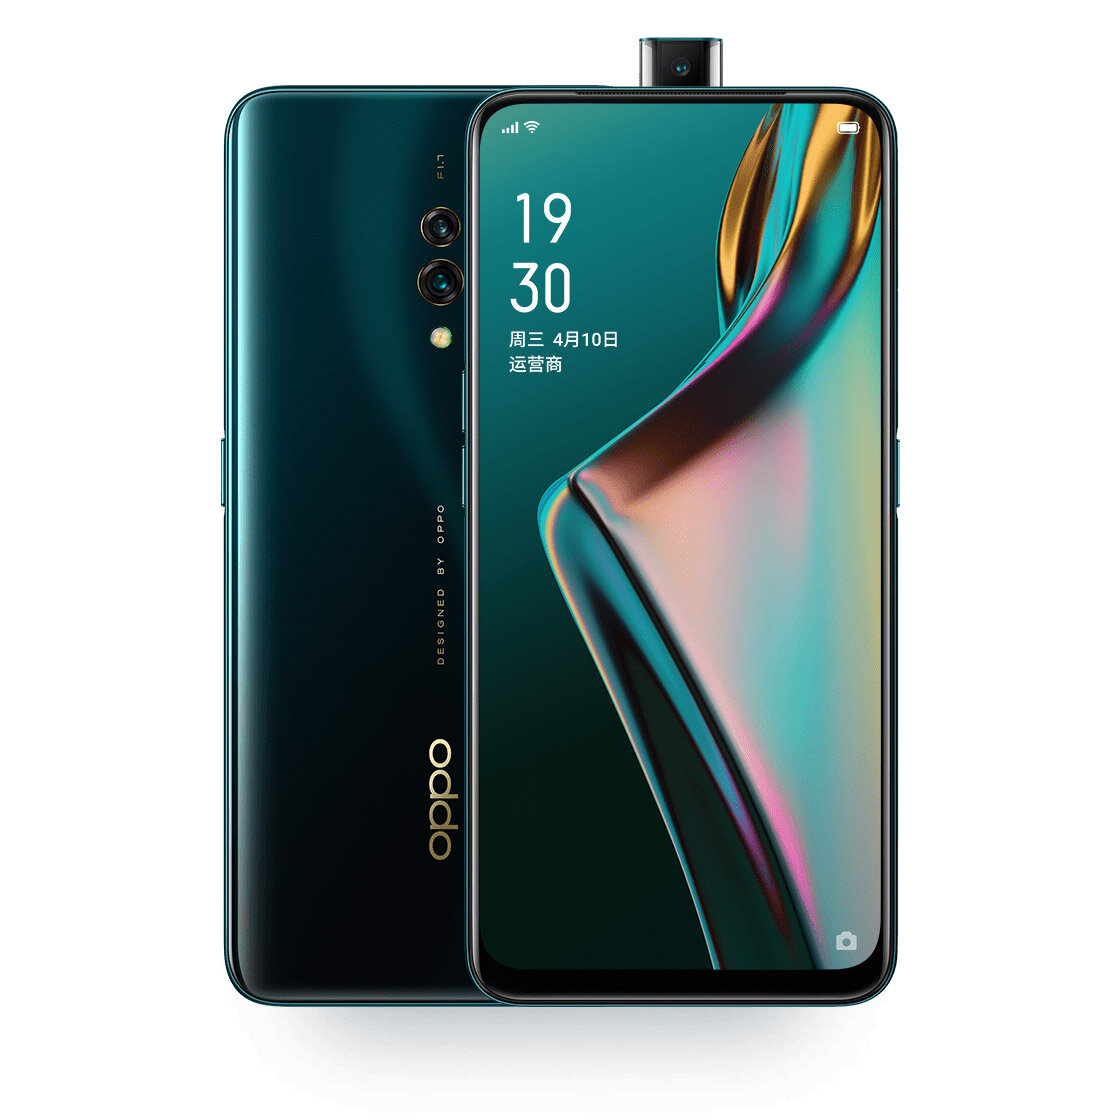 OPPO K3 6,5 tommers FHD + 3765mAh VOOC 3.0 Android 9.0 6 GB RAM 64GB ROM UFS 2.1 Snapdragon 710 Octa Core 2.2GHz Smarttelefon